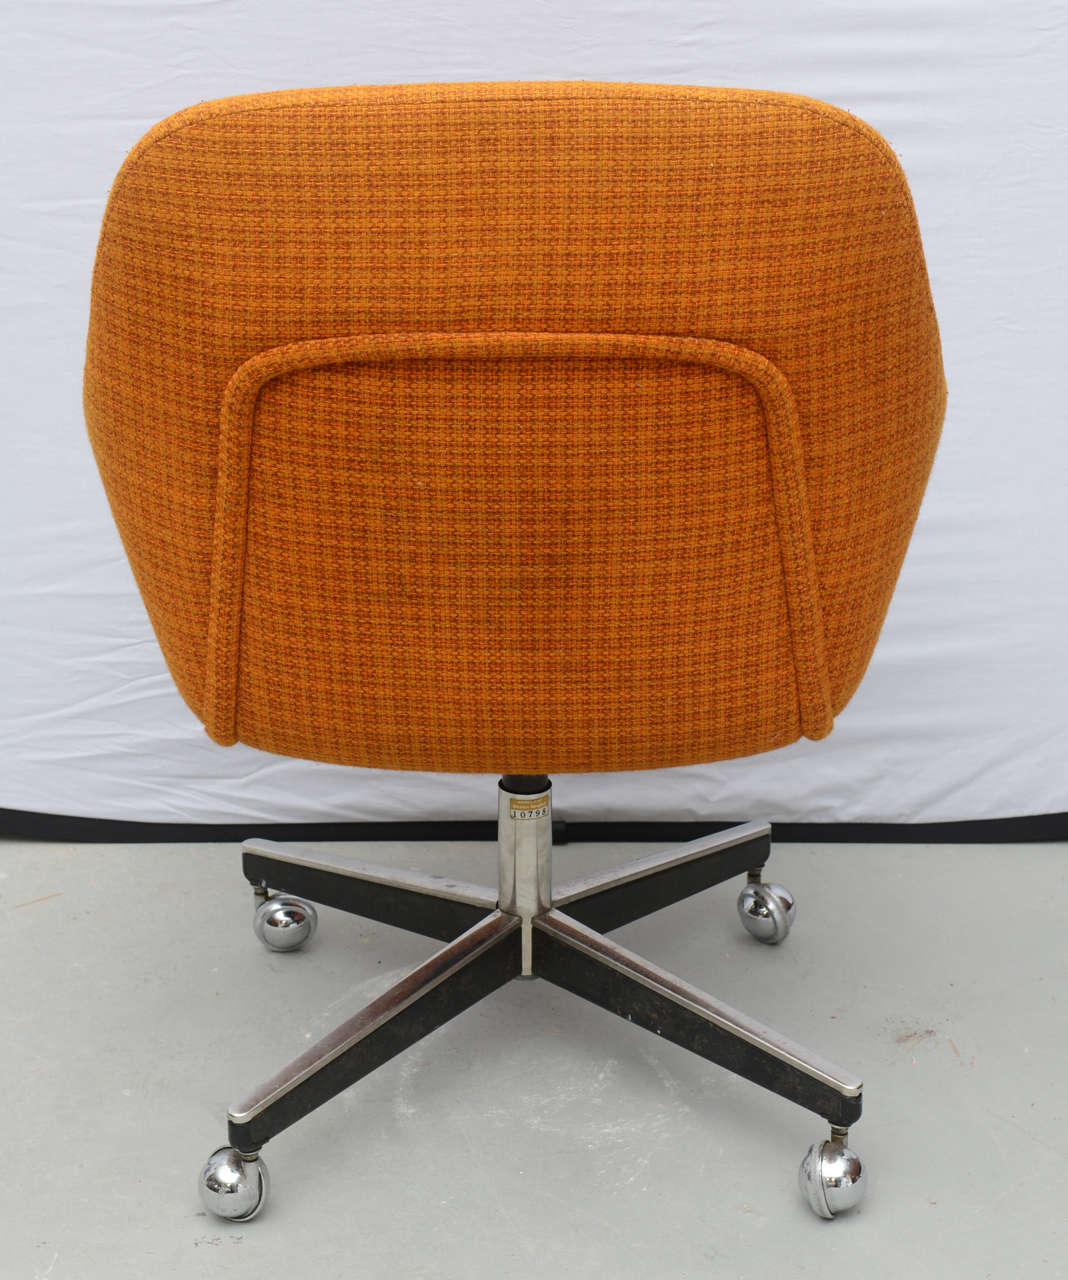 Roller Chairs Max Pearson For Knoll Oversized Roller Chairs 1970s At